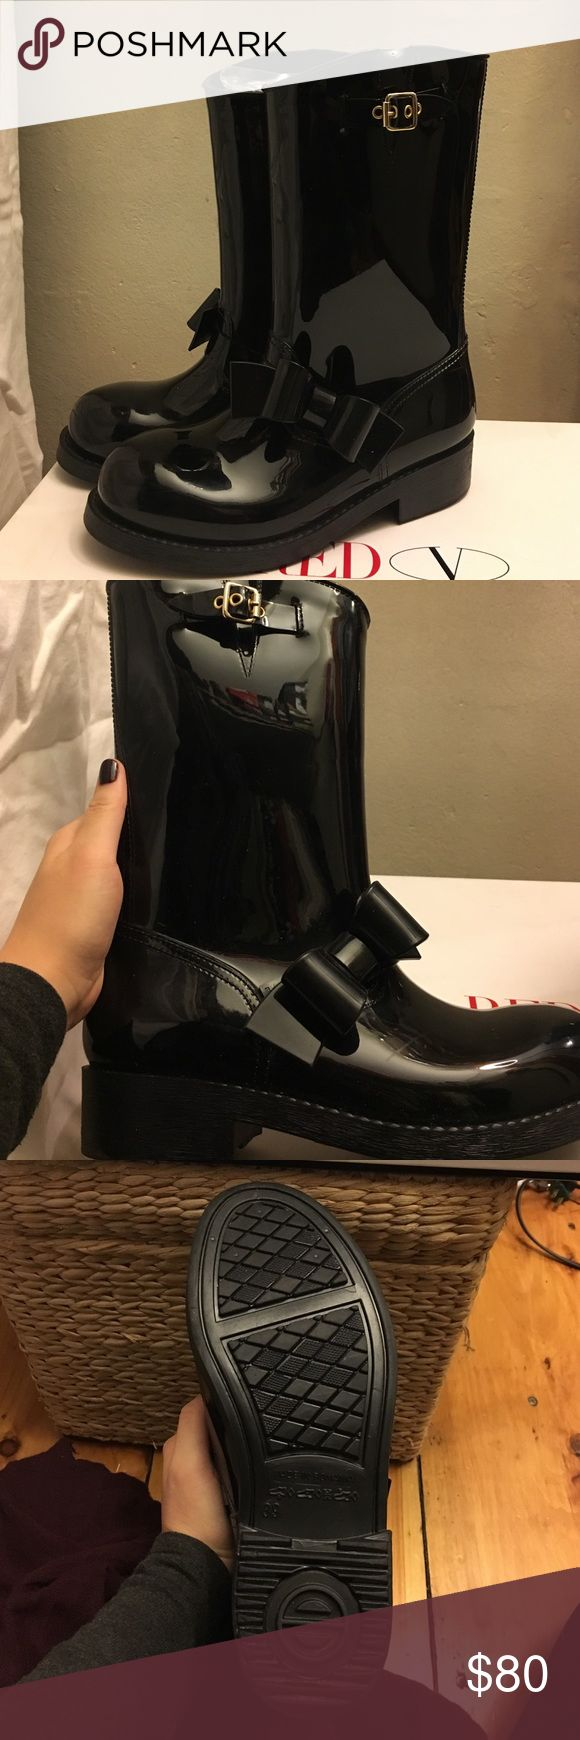 RED Valentino rain boots! Lightly worn, still look like new! Light scuffs on inside of each foot. Original box and dust bag included. RED Valentino Shoes Winter & Rain Boots